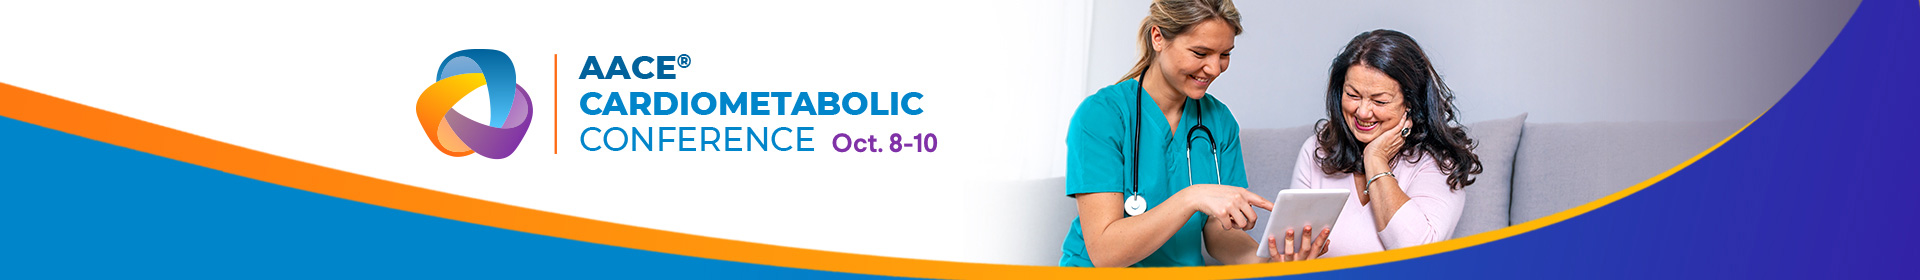 Cardiometabolic Health Conference Event Banner